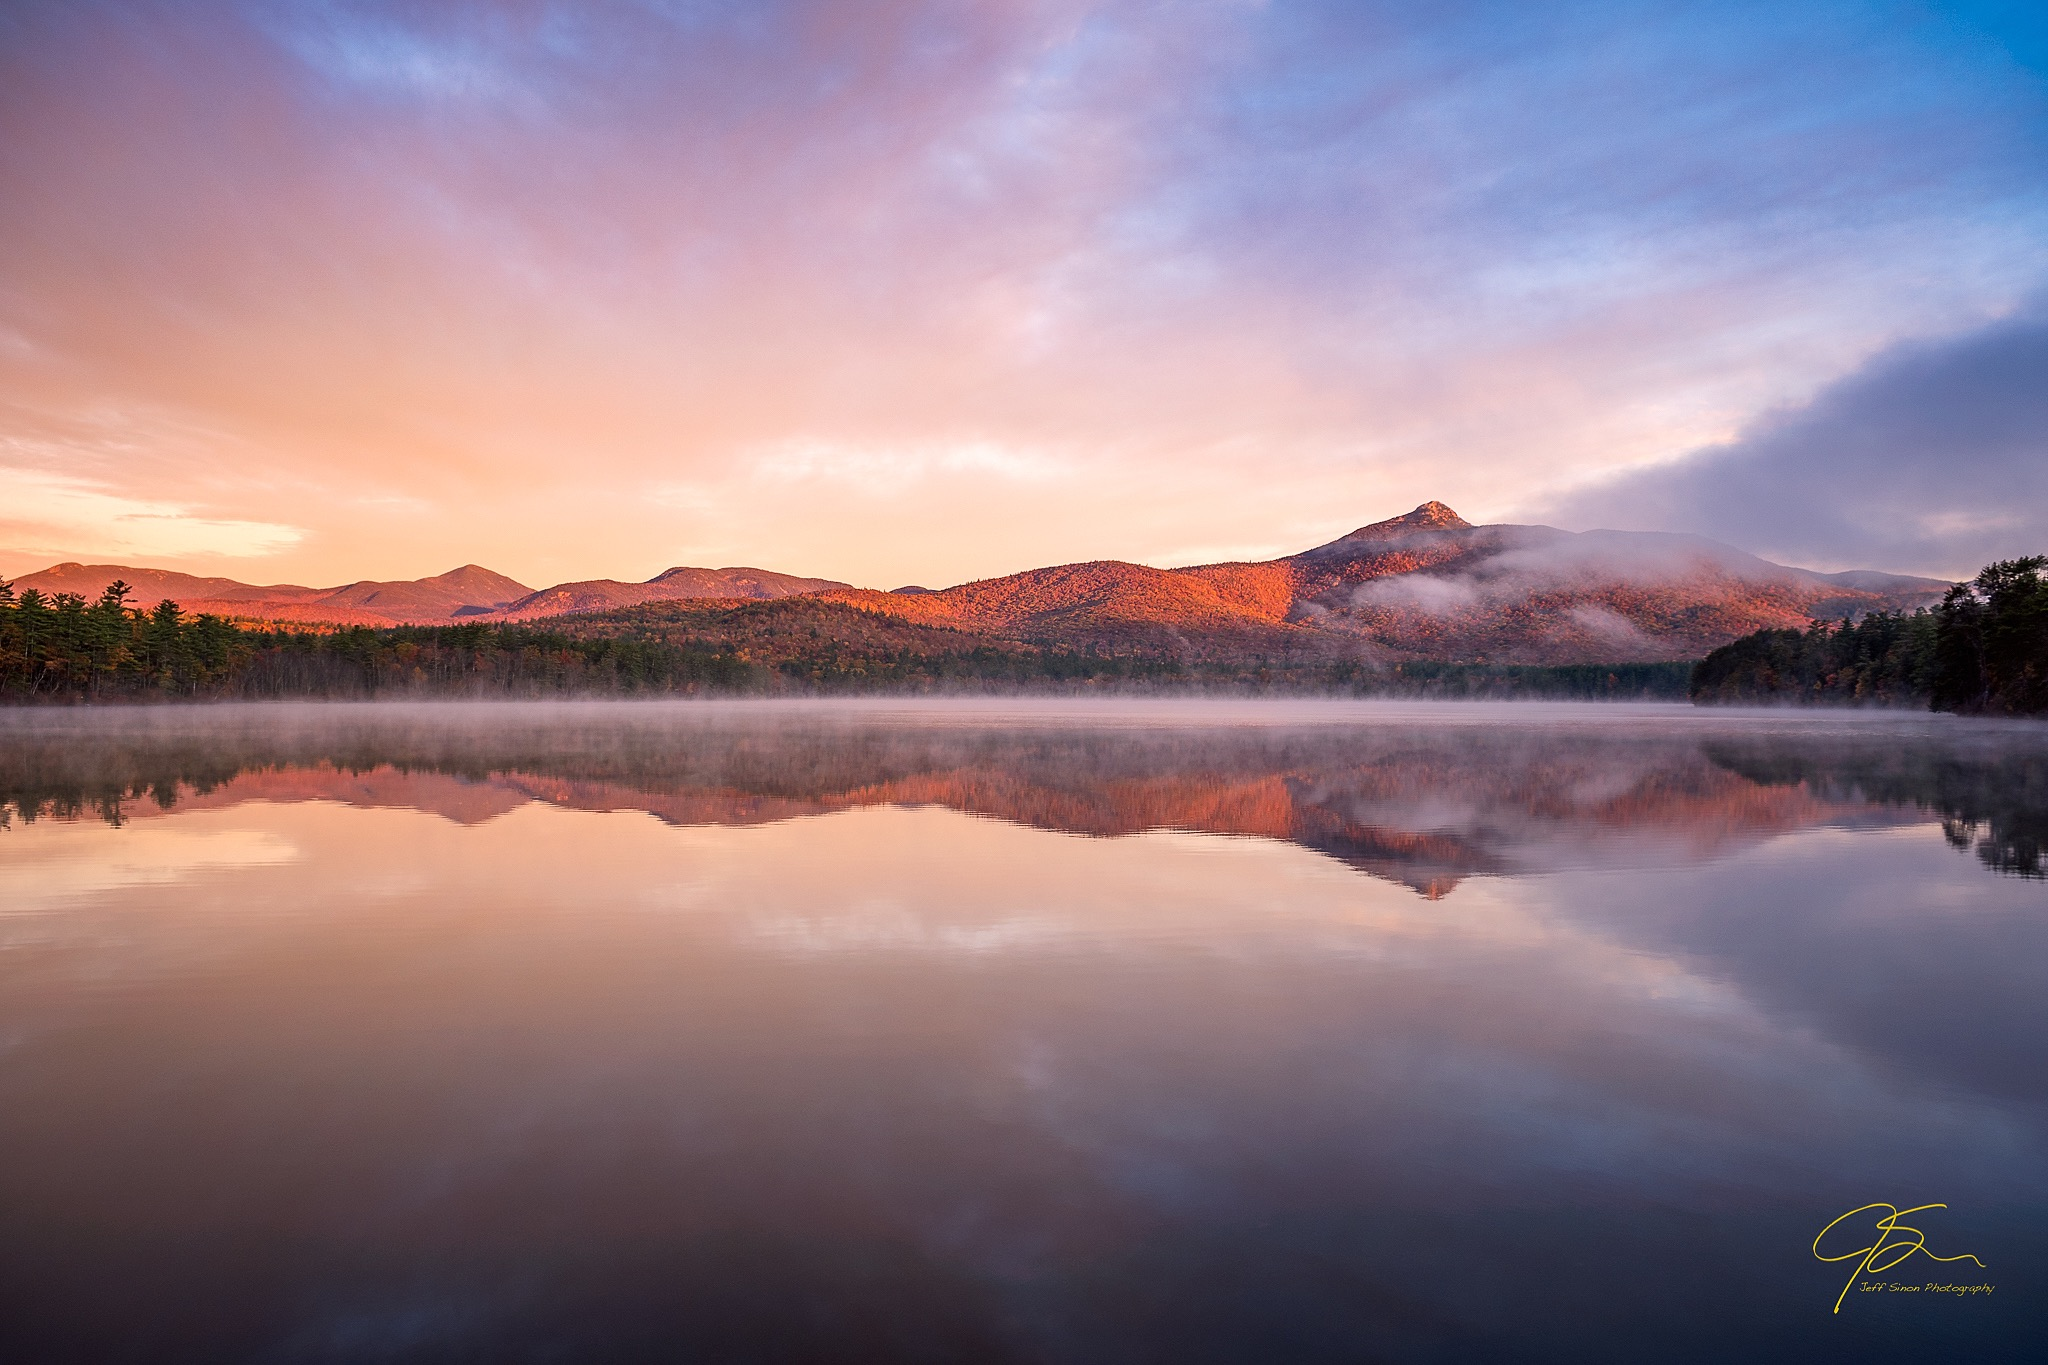 sunrise light illuminates the iconic profile of Mount Chocorua. The mountains summit peeking our from the morning mist, all reflected on the glassy surface of Chocorua Lake.